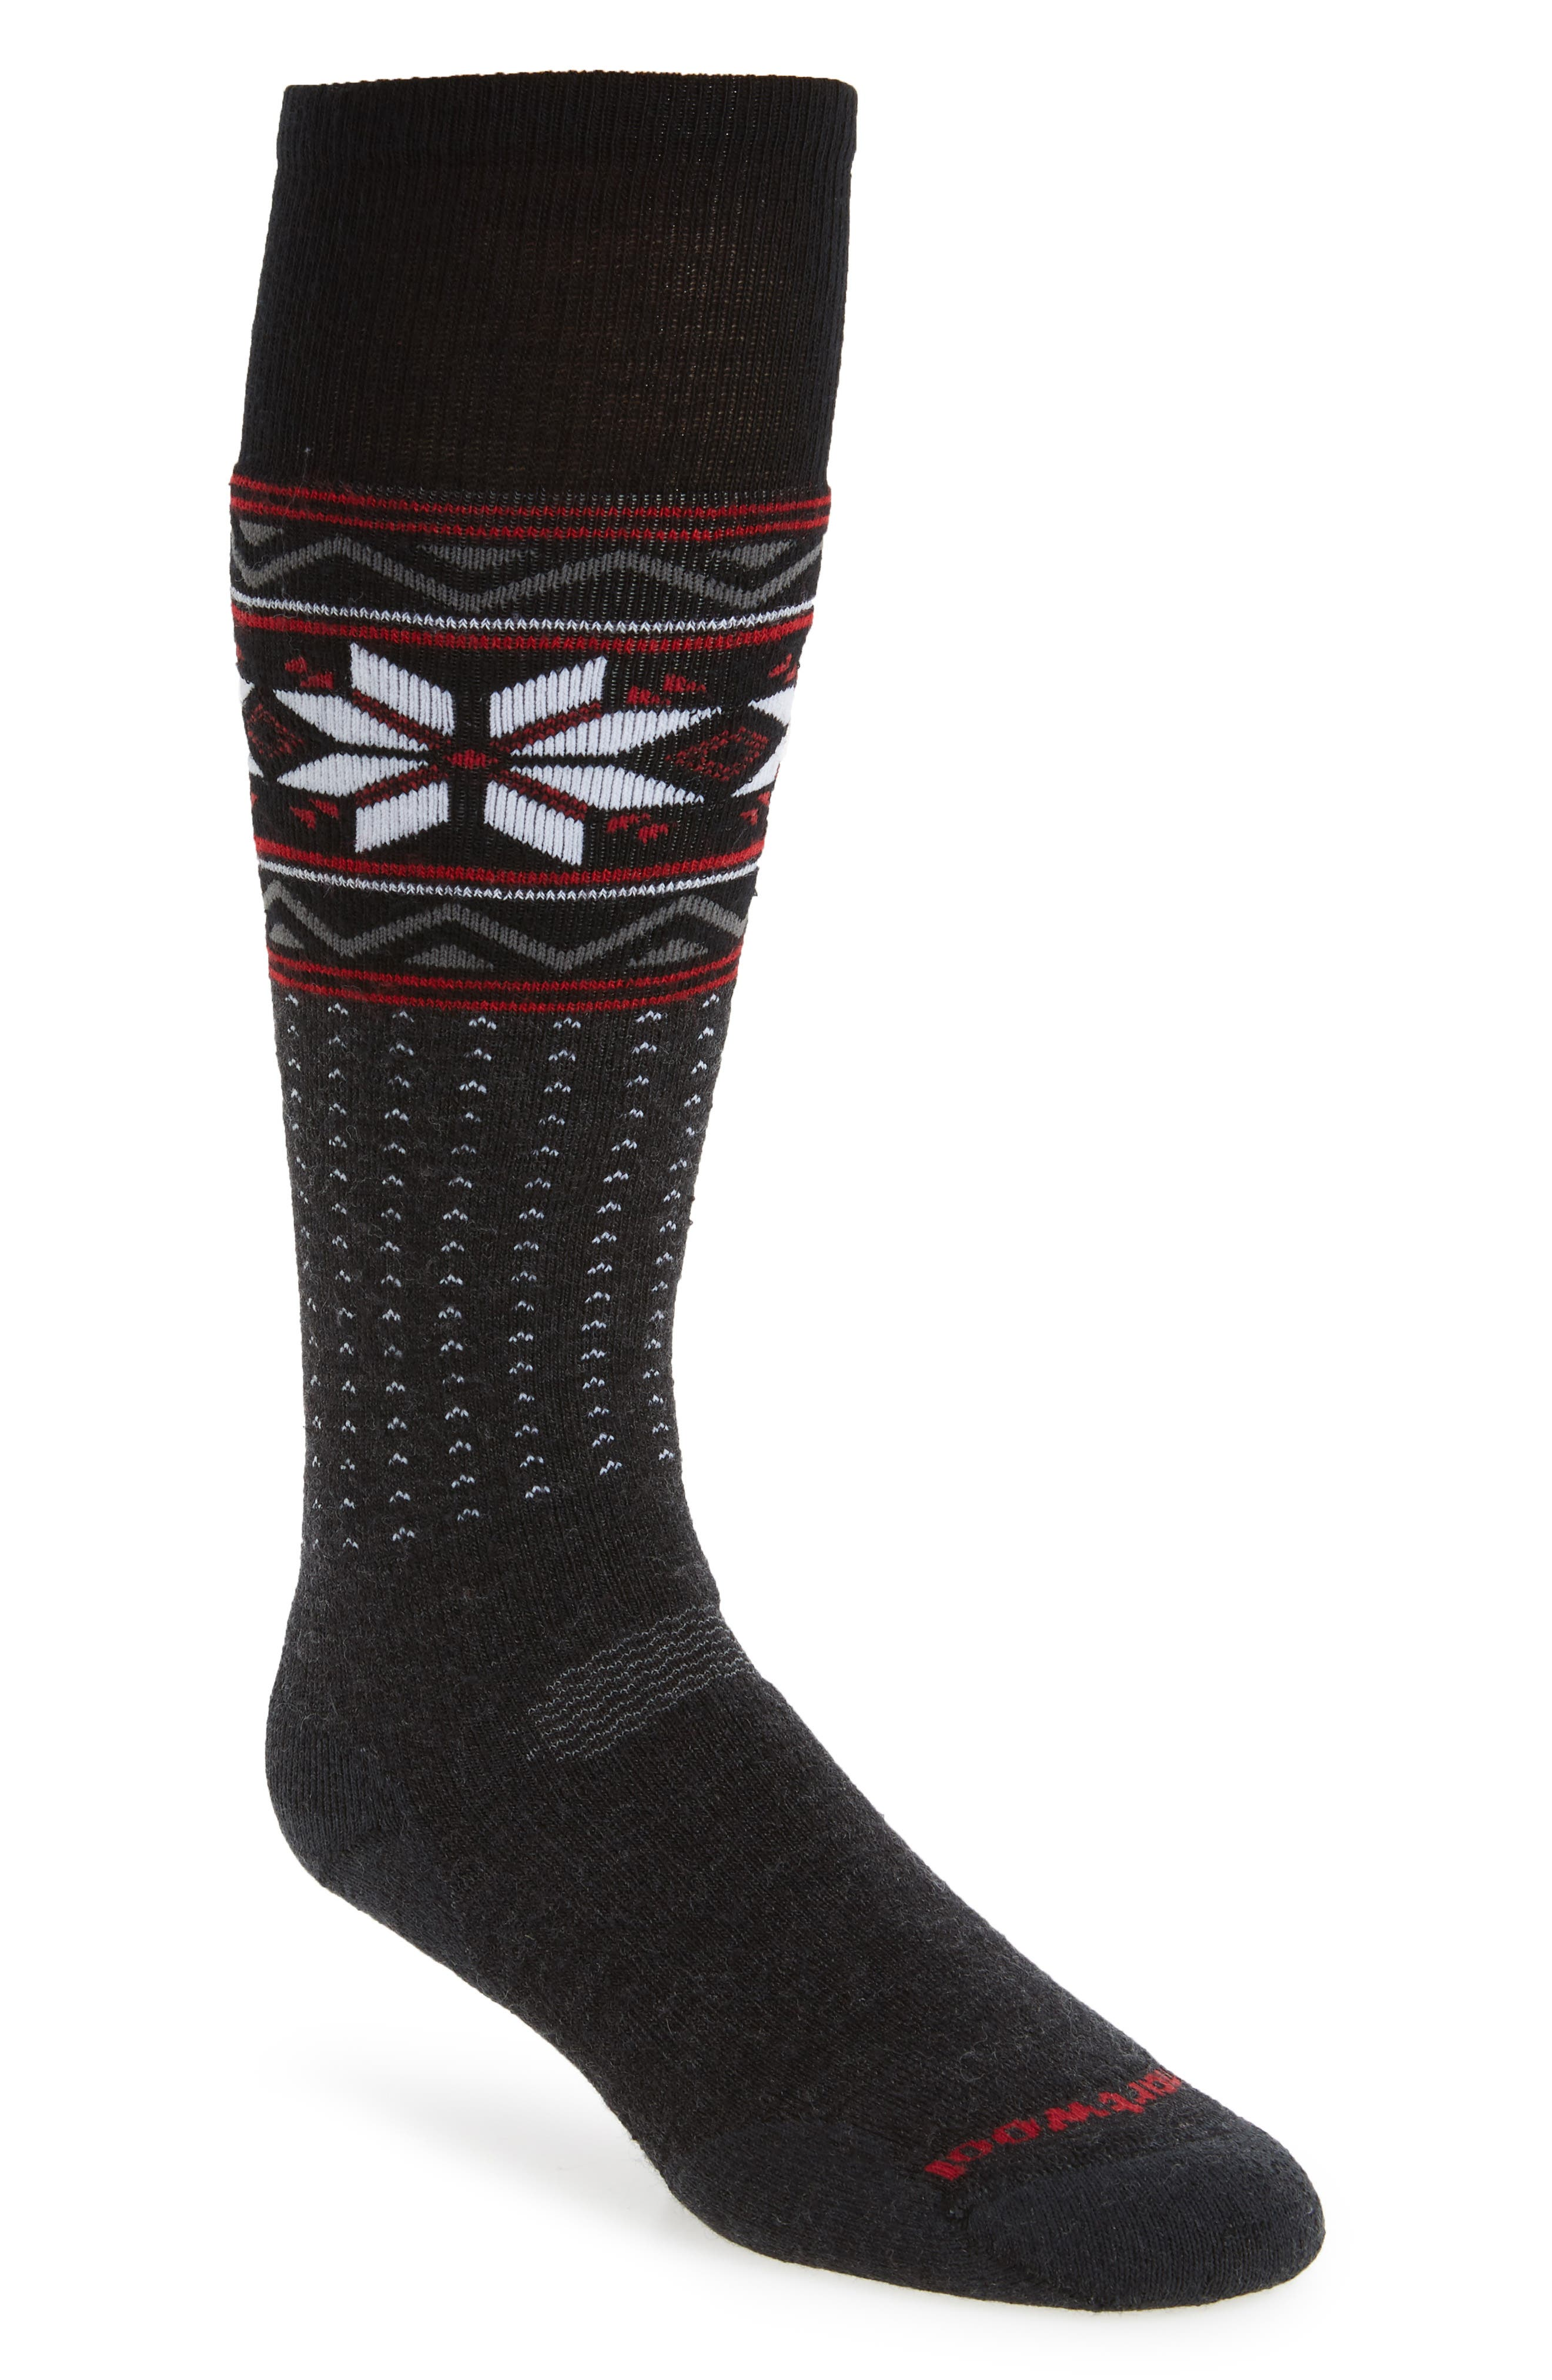 PhD Slopestyle Socks,                         Main,                         color, Charcoal